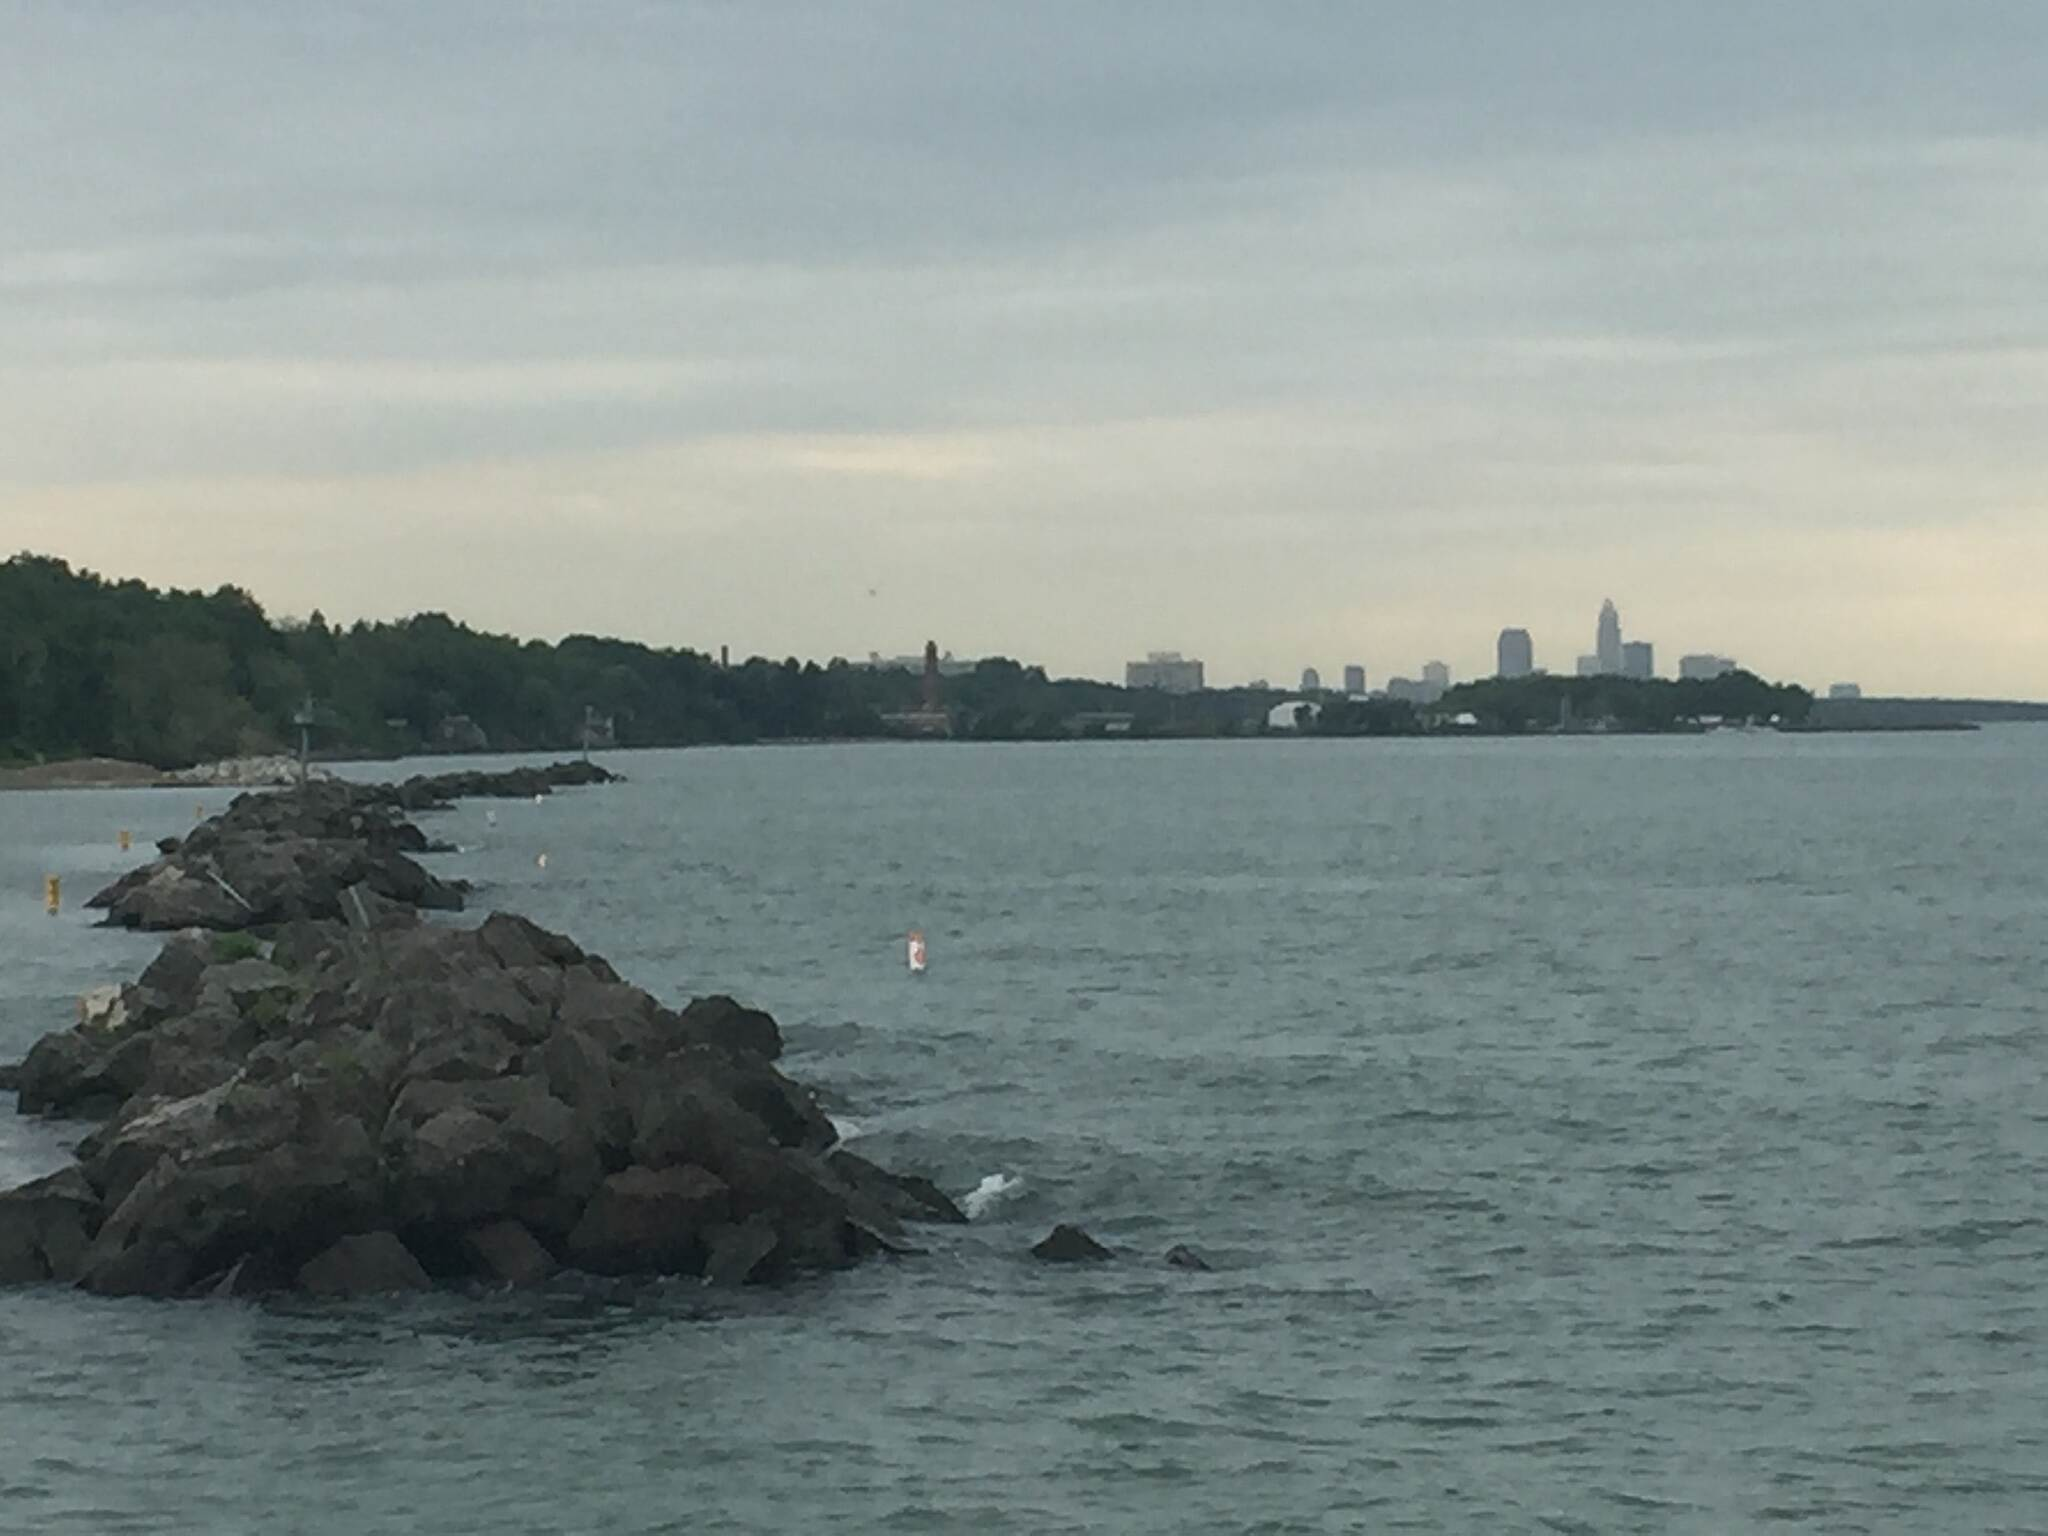 Cleveland Lakefront Bikeway Cleveland, Ohio Skyline A view of the downtown Cleveland, Ohio skyline from the pier near Euclid Beach on the southern shore of Lake Erie.  June 9, 2017.